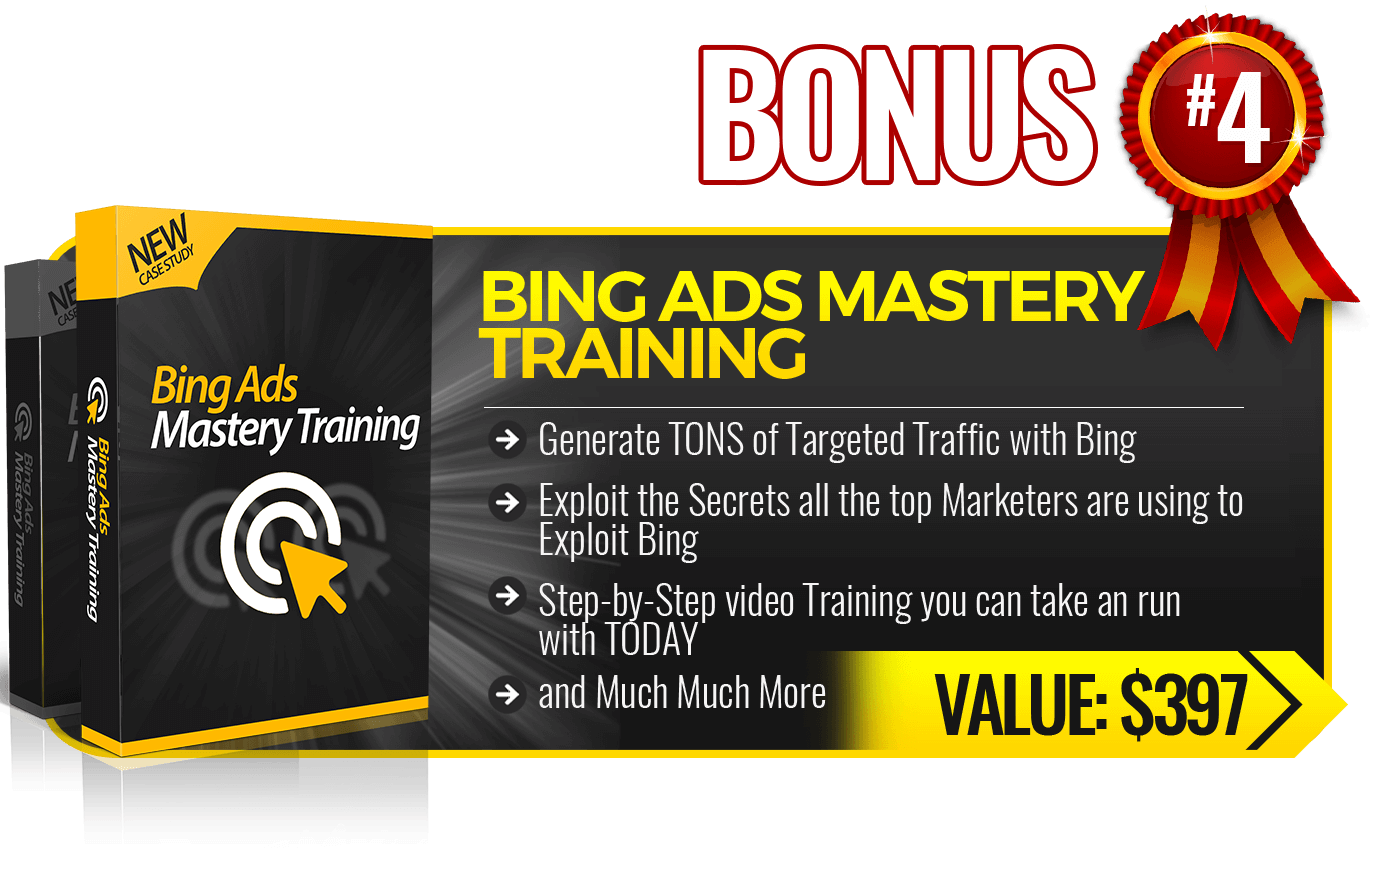 4. Bing Ads Mastery Training